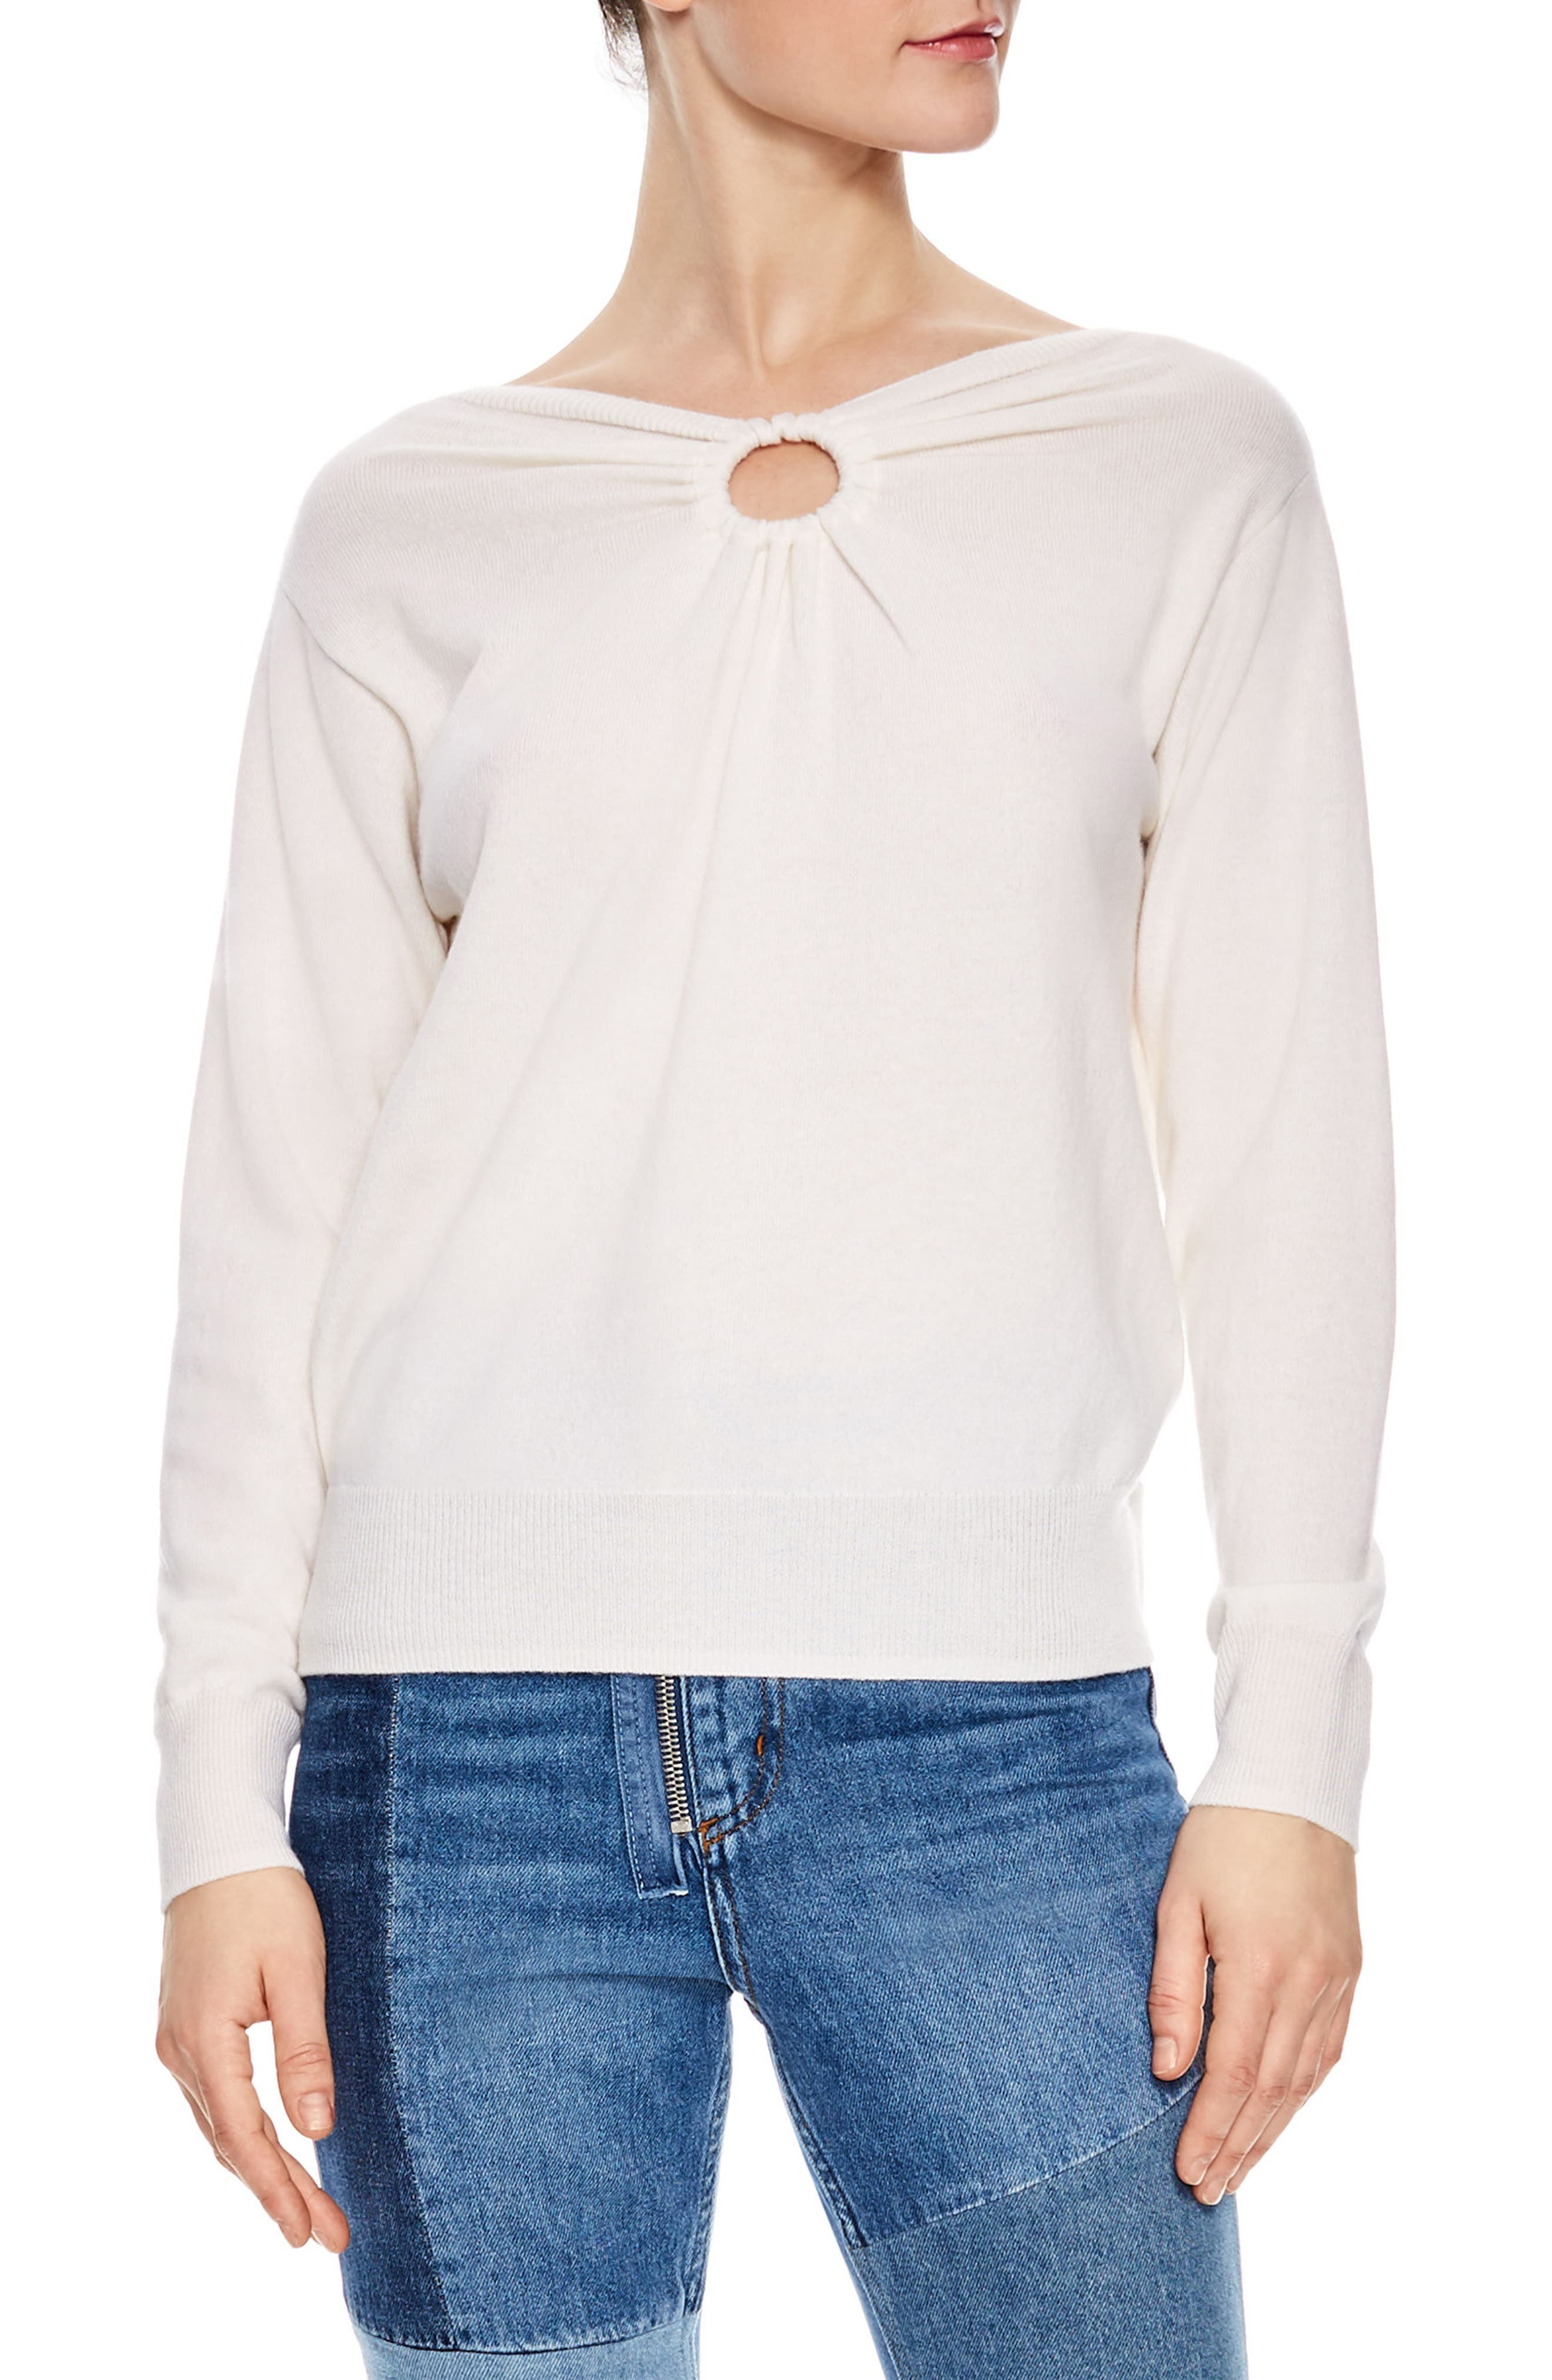 Keyhole Wool & Cashmere Sweater,                         Main,                         color, 100